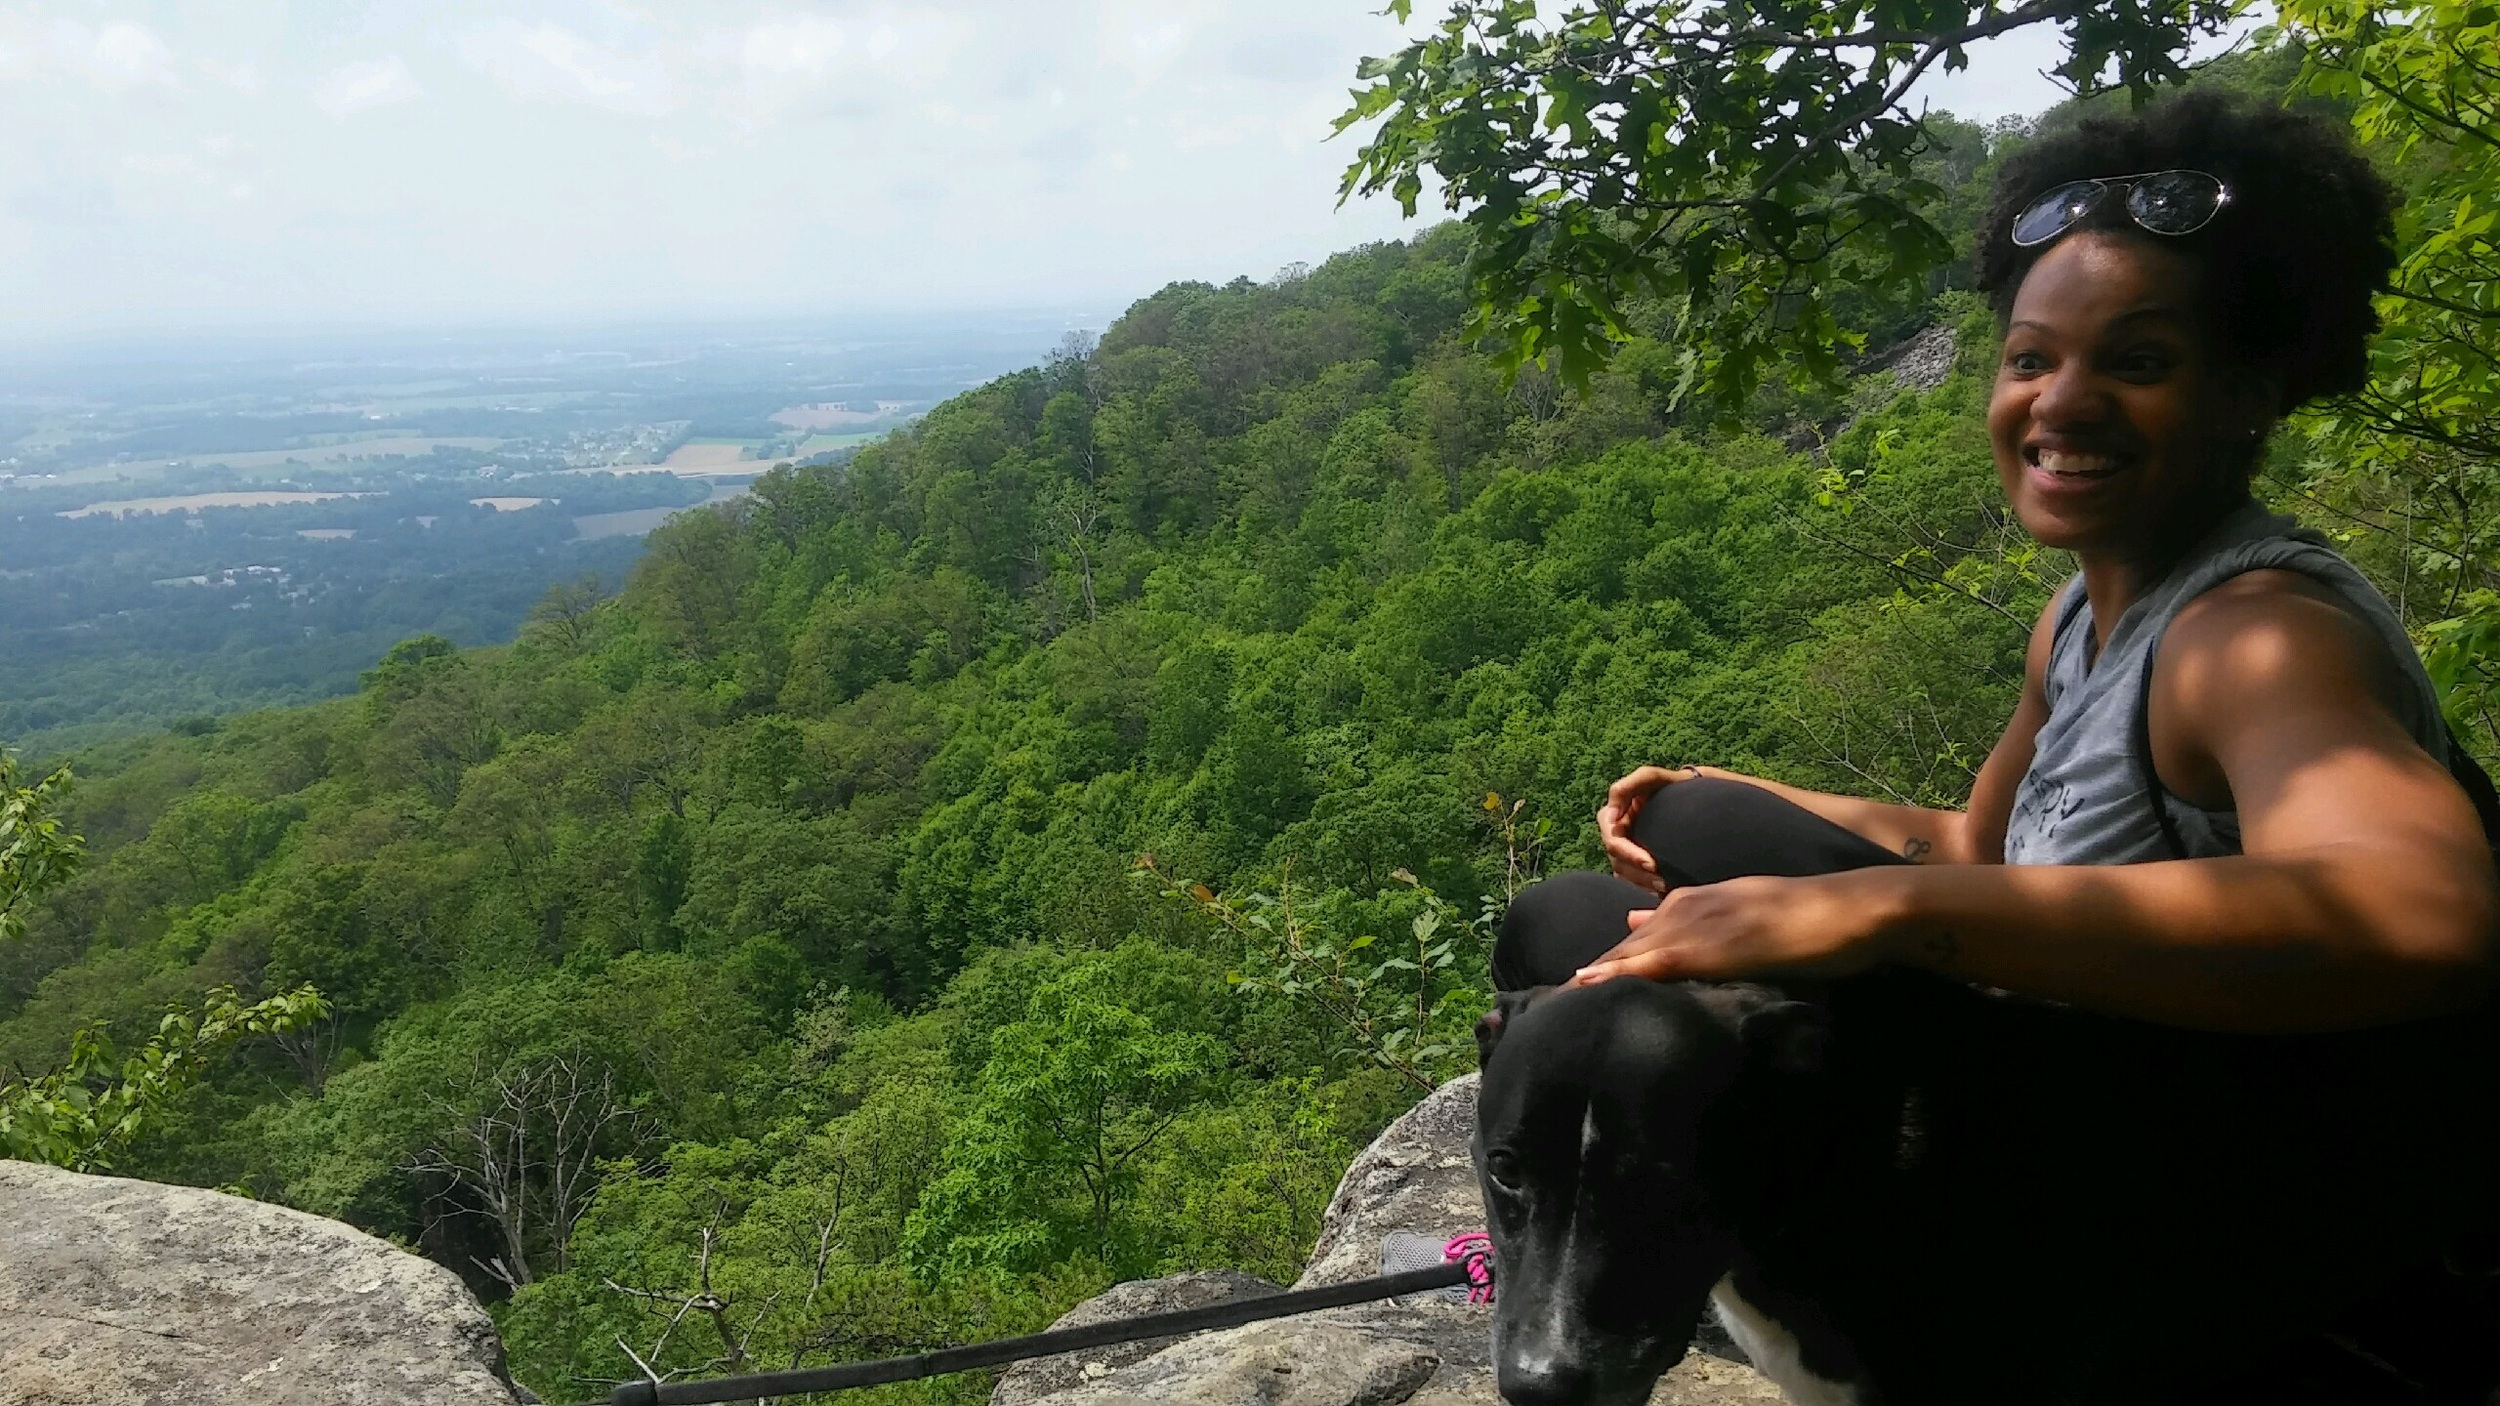 Sitting on Annapolis Rock after a 2.5 mile uphill trek.